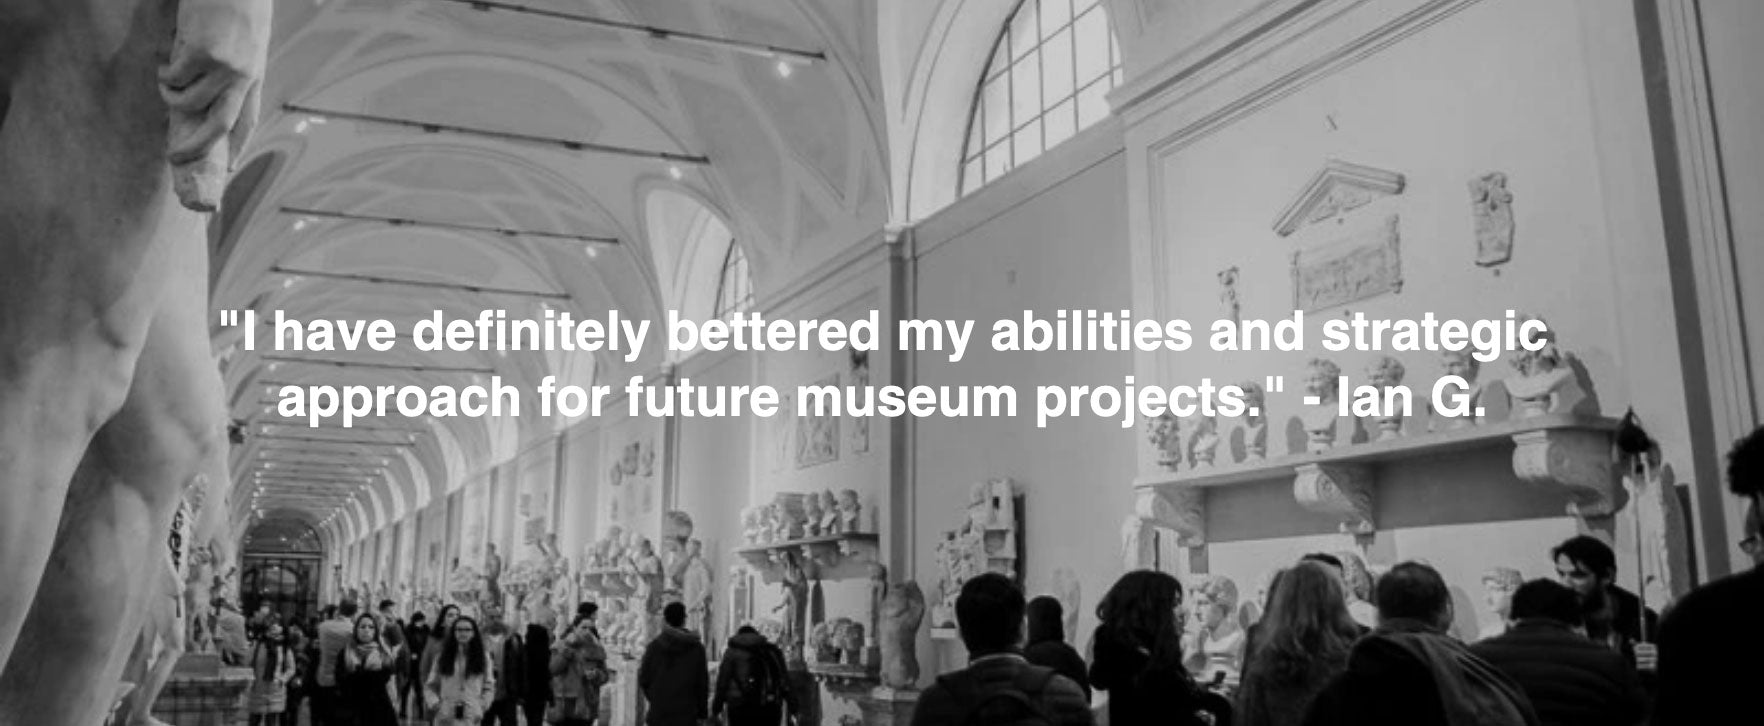 "testimonial: ""I have definitely bettered my abilities and strategic approach for future museum projects."" - Ian G."